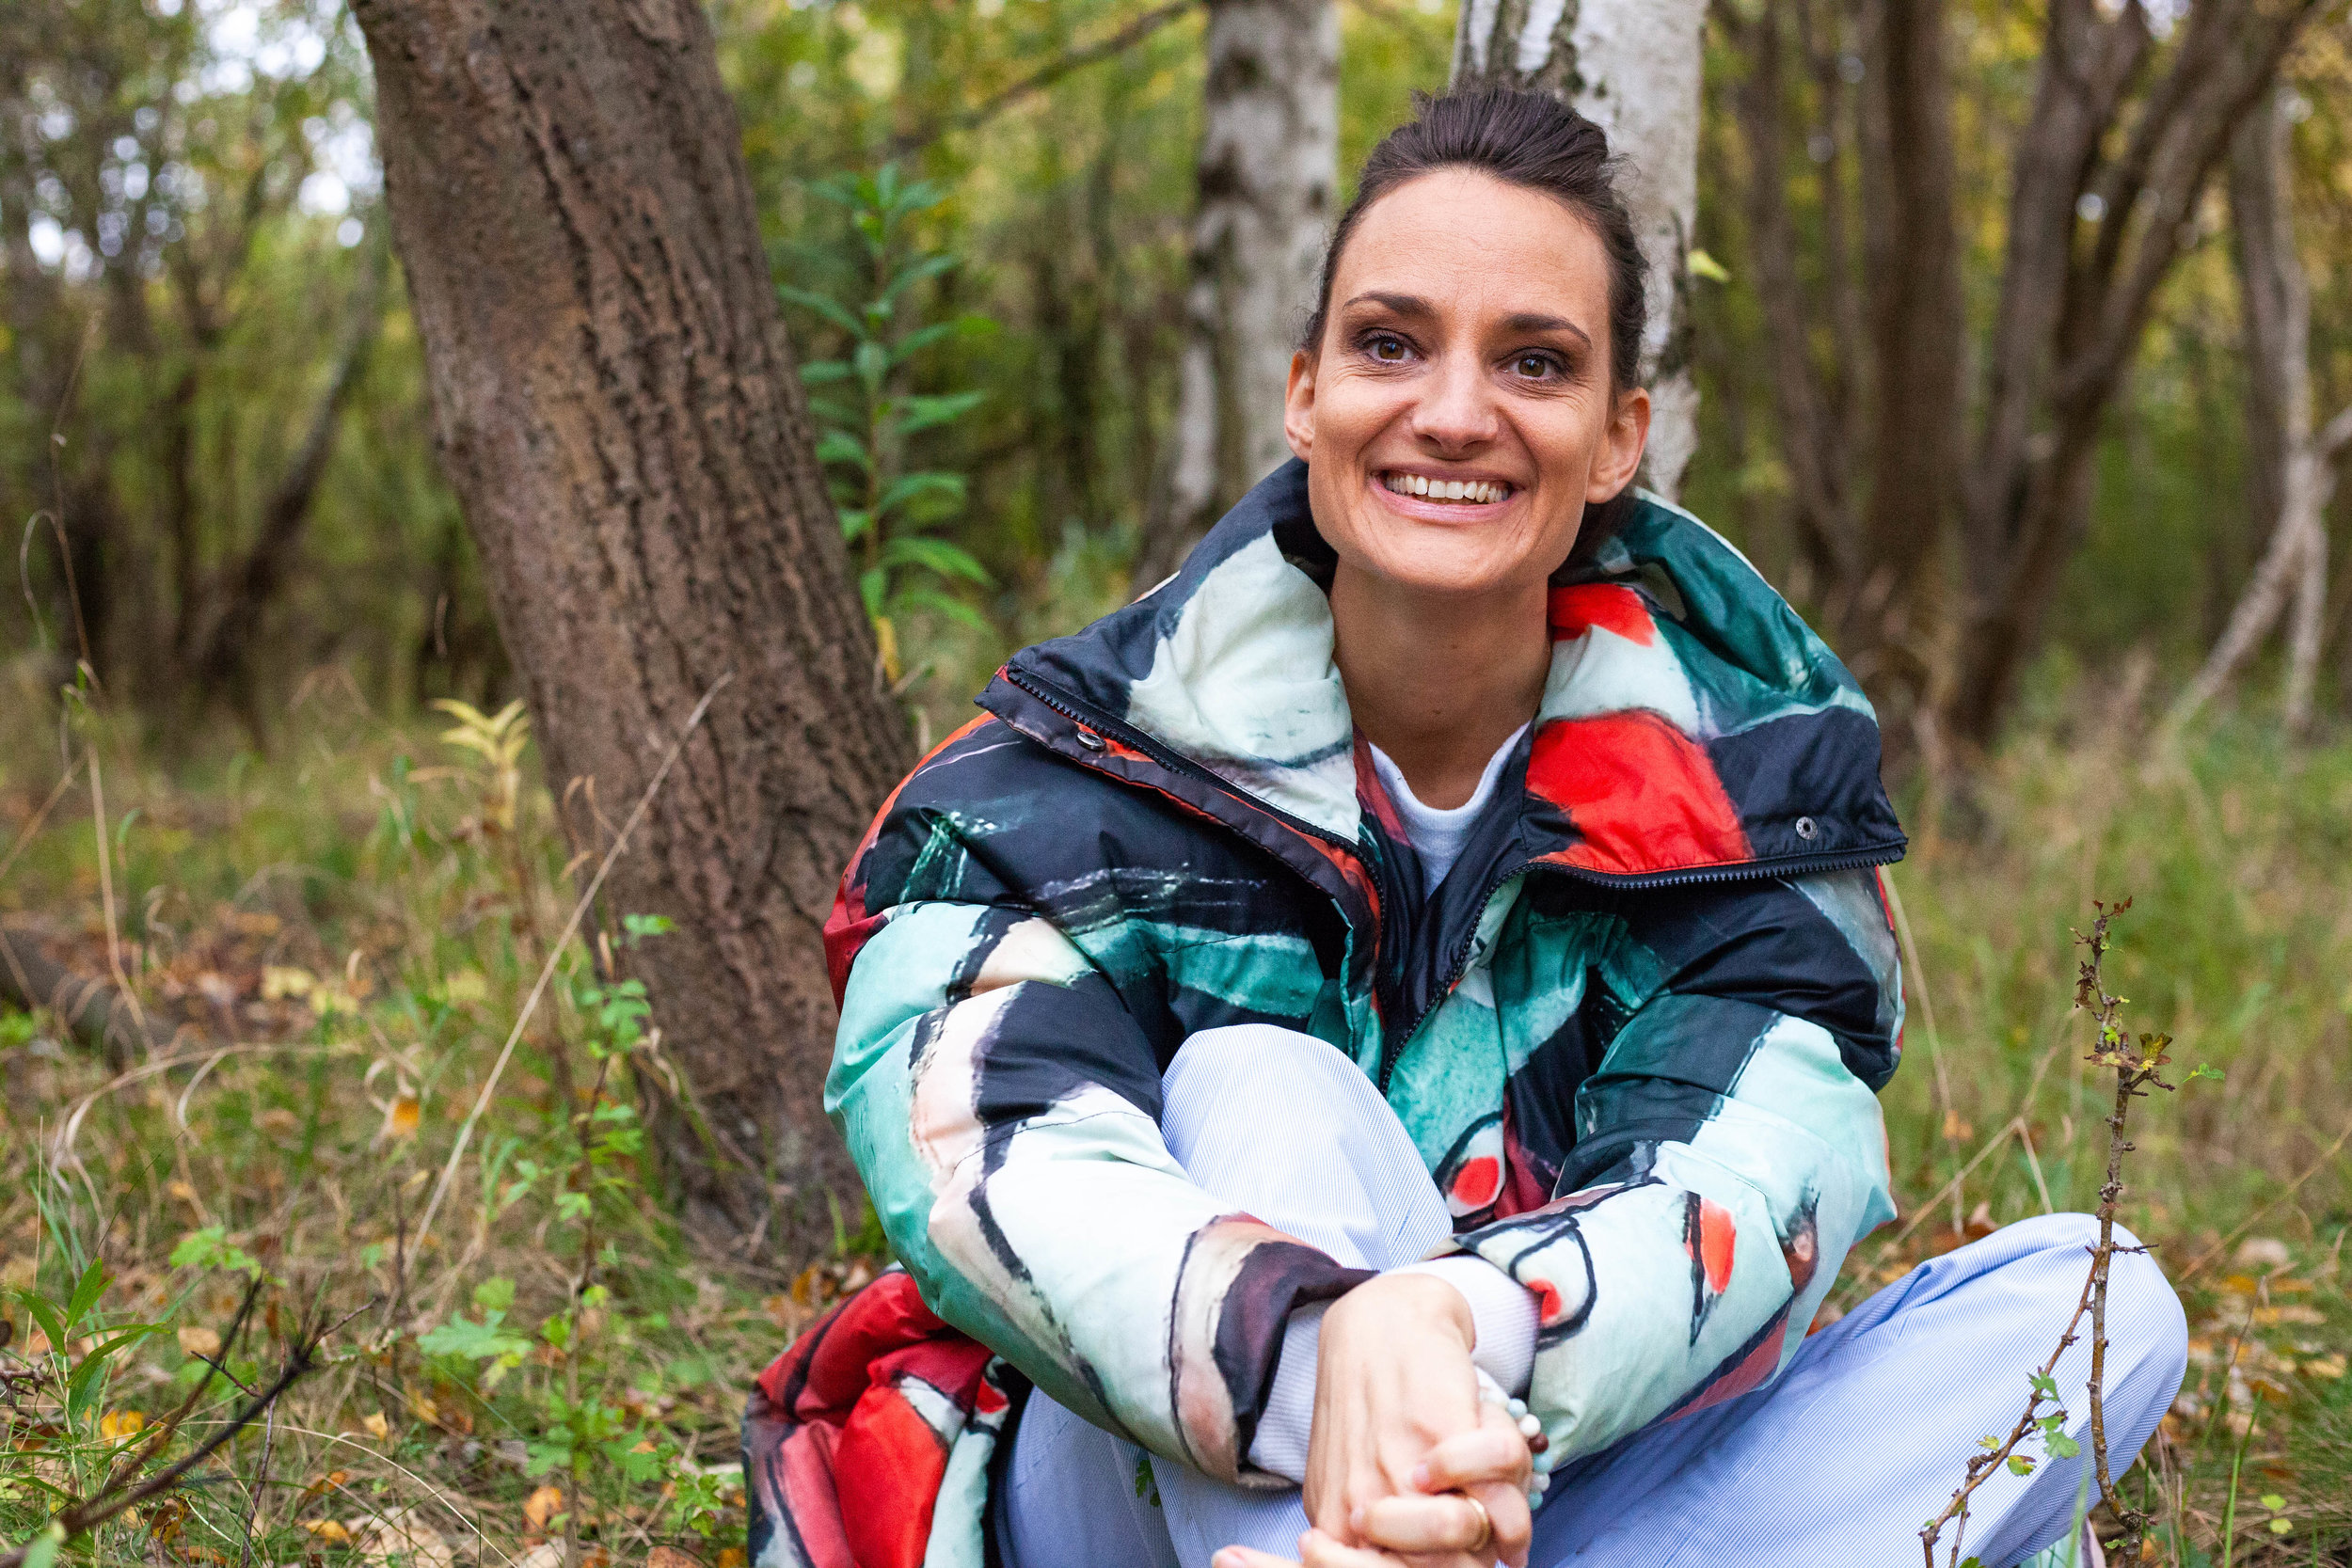 """Laura Storm  has for the past 15 years headed and created multiple global organizations in the intersection between  business, sustainability, climate change policy, innovation and leadership.  The common denominator being a focus on the global transformation to sustainability - including Copenhagen Climate Council and  Sustainia . Her academic background is a Master in Political Communication & Leadership focused on the challenges and opportunities when implementing sustainability strategies. .  For her work she has been awarded the title  """"Worldchanger""""  by Greenbiz and is selected by the World Economic Forum as a  Young Global Leader  and  Sustainability Expert.  She also hosts the podcast  Cracks of Light - Leadership for a thriving world  that engage leaders in a dialogue around the paradigm shift towards a world where purpose, people, planet & profit collectively thrive."""